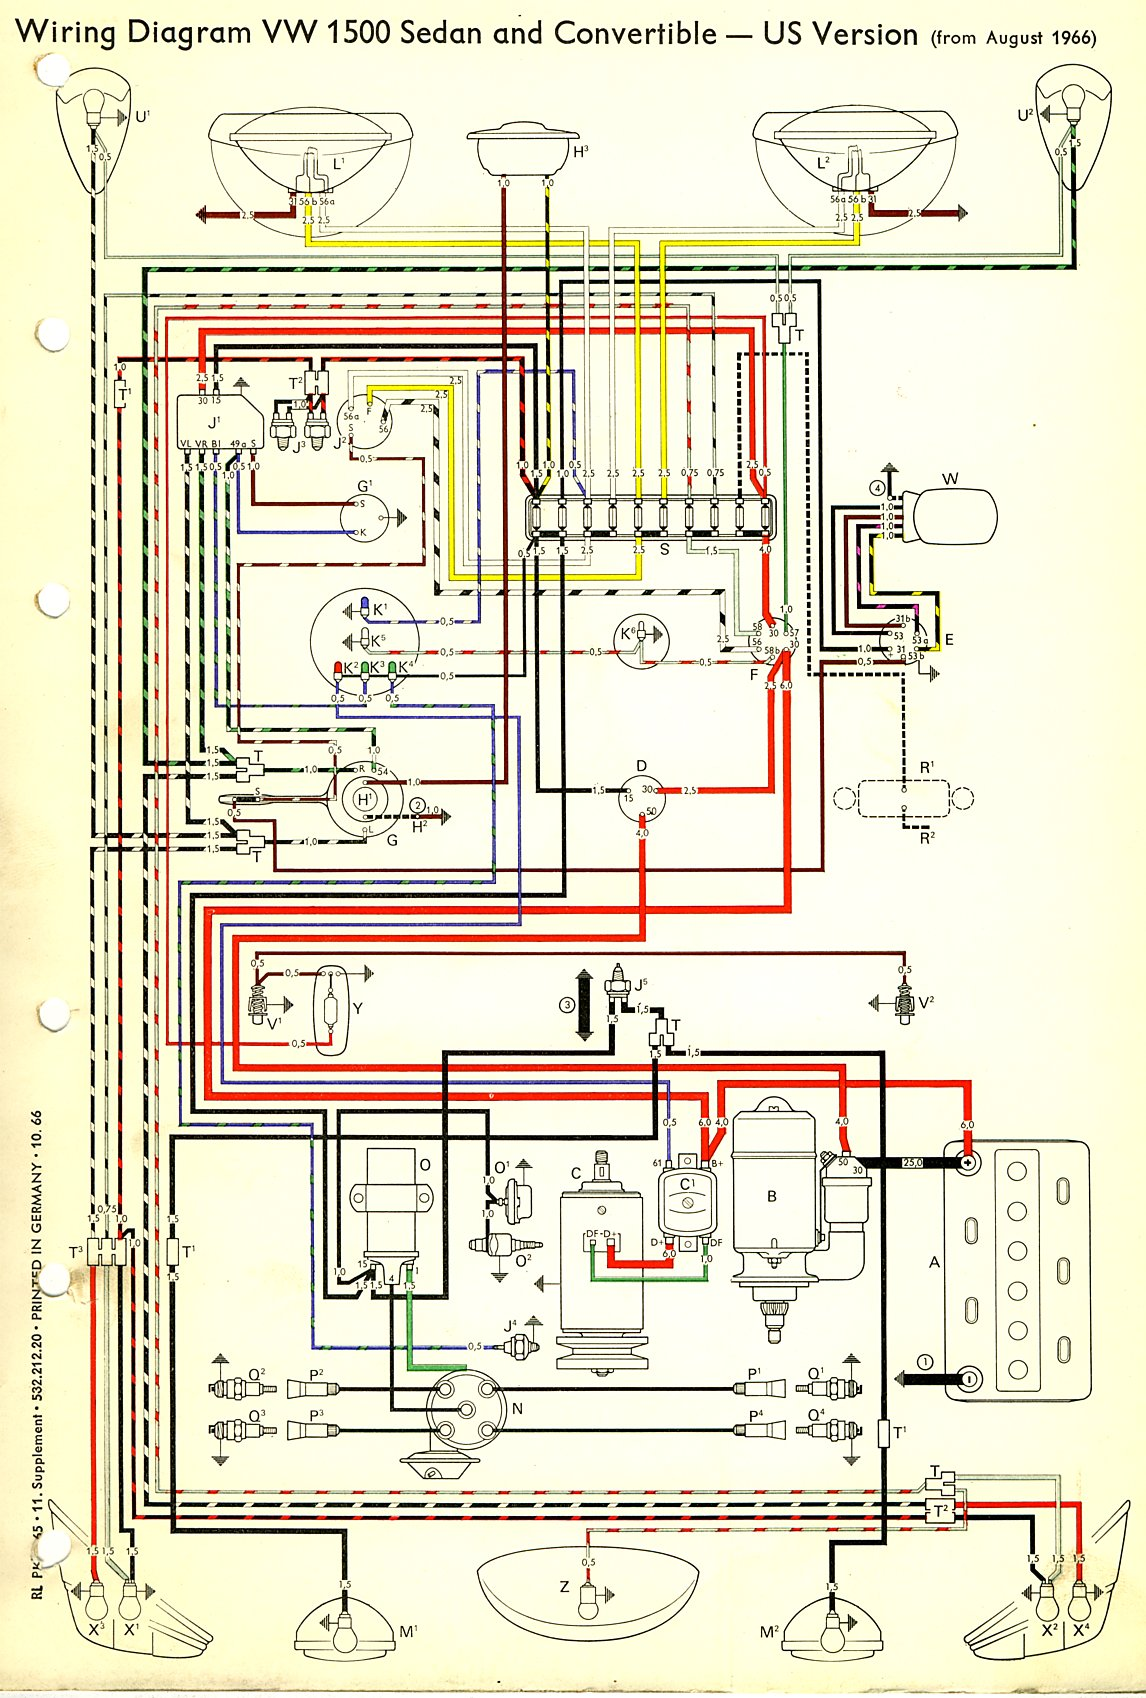 hight resolution of 1998 vw beetle wiring diagram wire rh economiaynegocios co 1971 fuse 1600 1600 vw starter